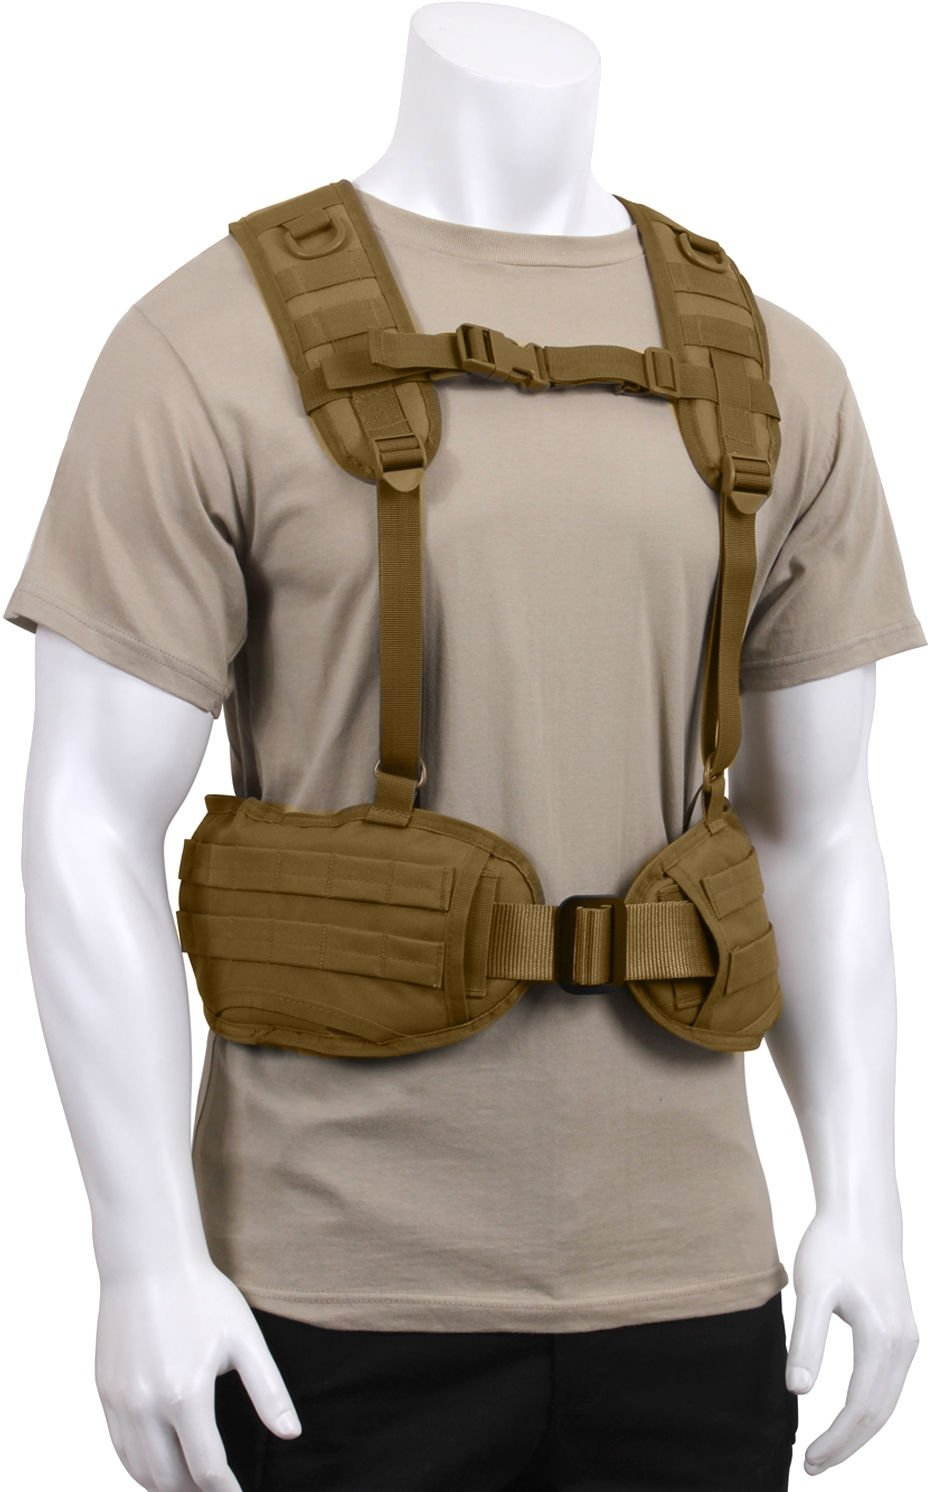 Tactical Load Bearing Military MOLLE Police Battle Belt Harness  50a6a620a74